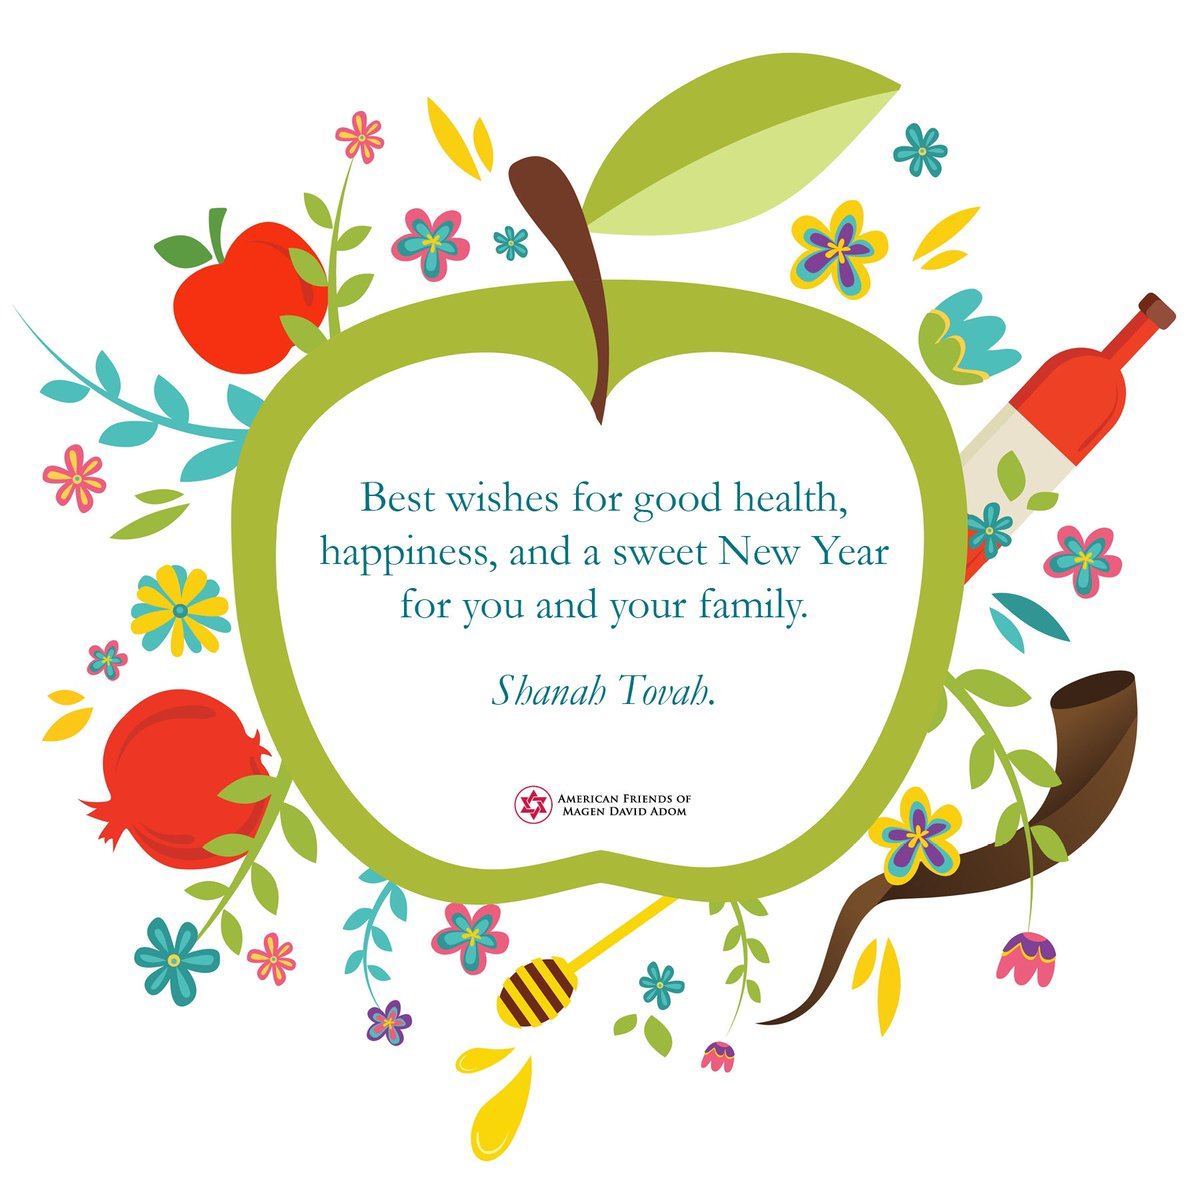 afmda on twitter wishing you good health happiness success prosperity and peace in the new year happynewyear shanahtovah shanatova 5777 israel